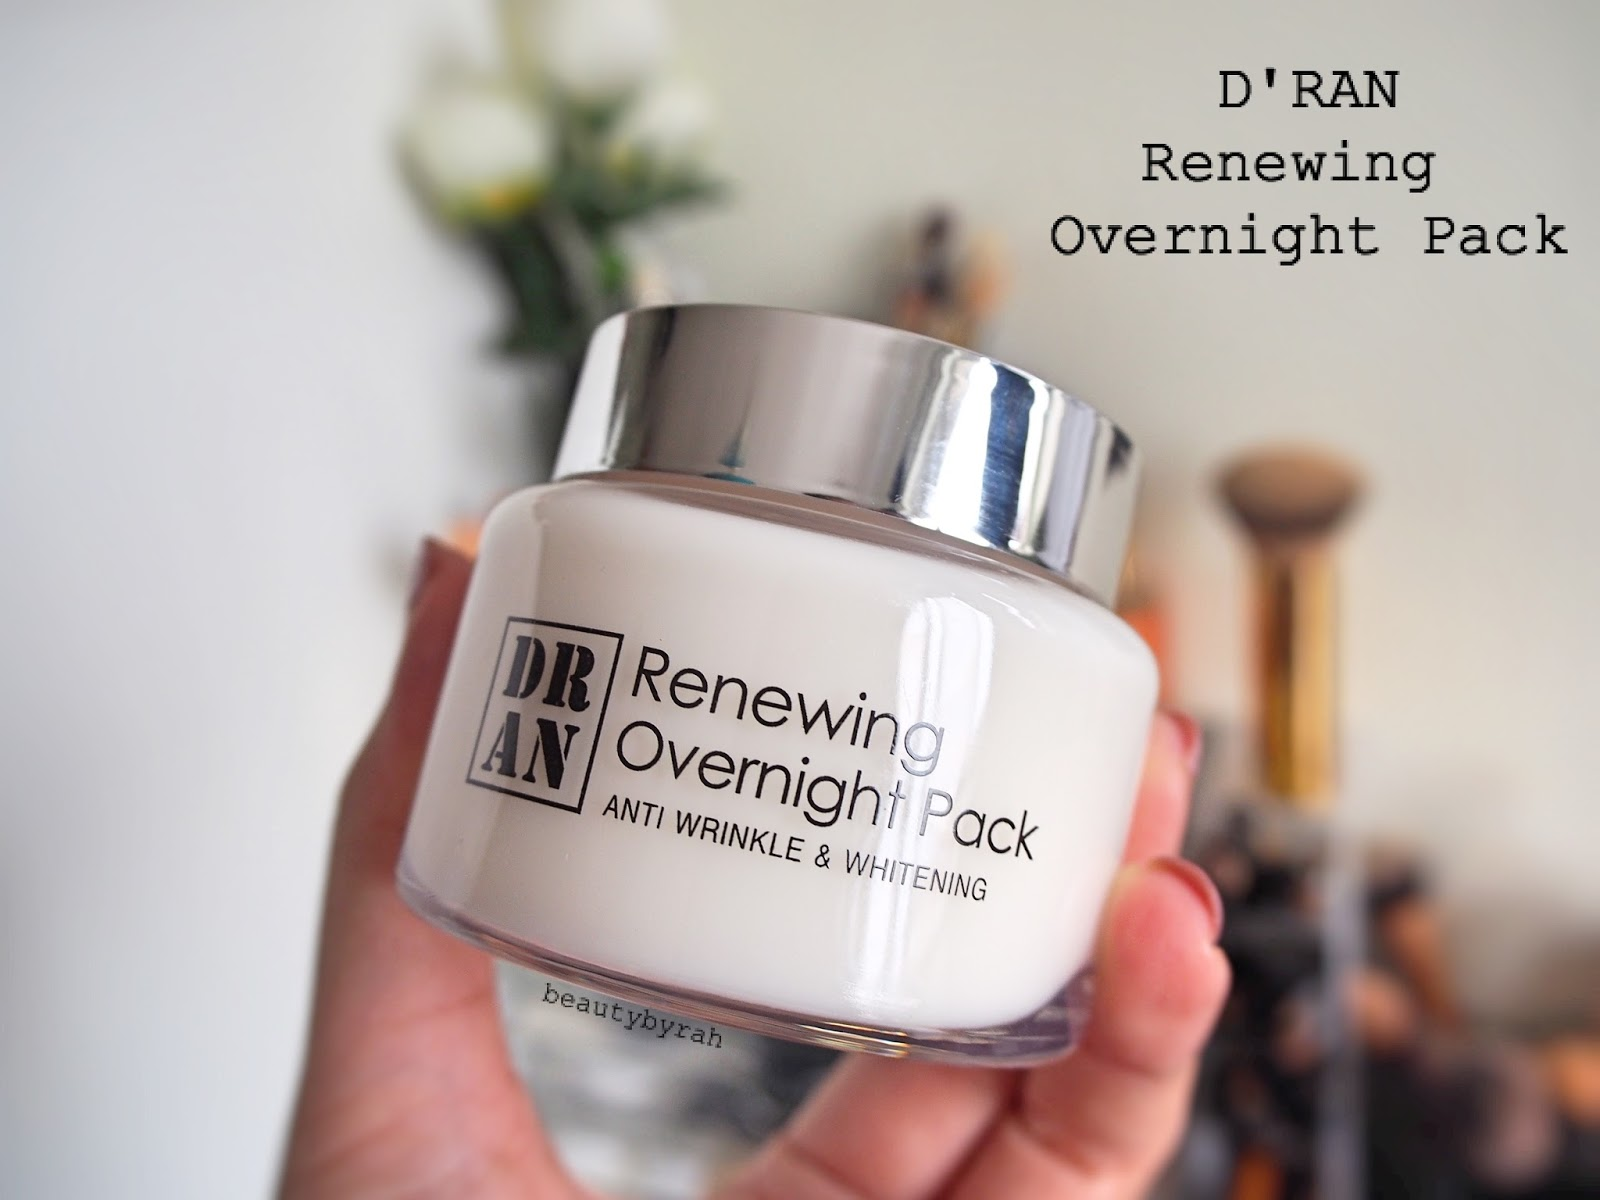 D'Ran renewing Overnight Sleeping Pack review